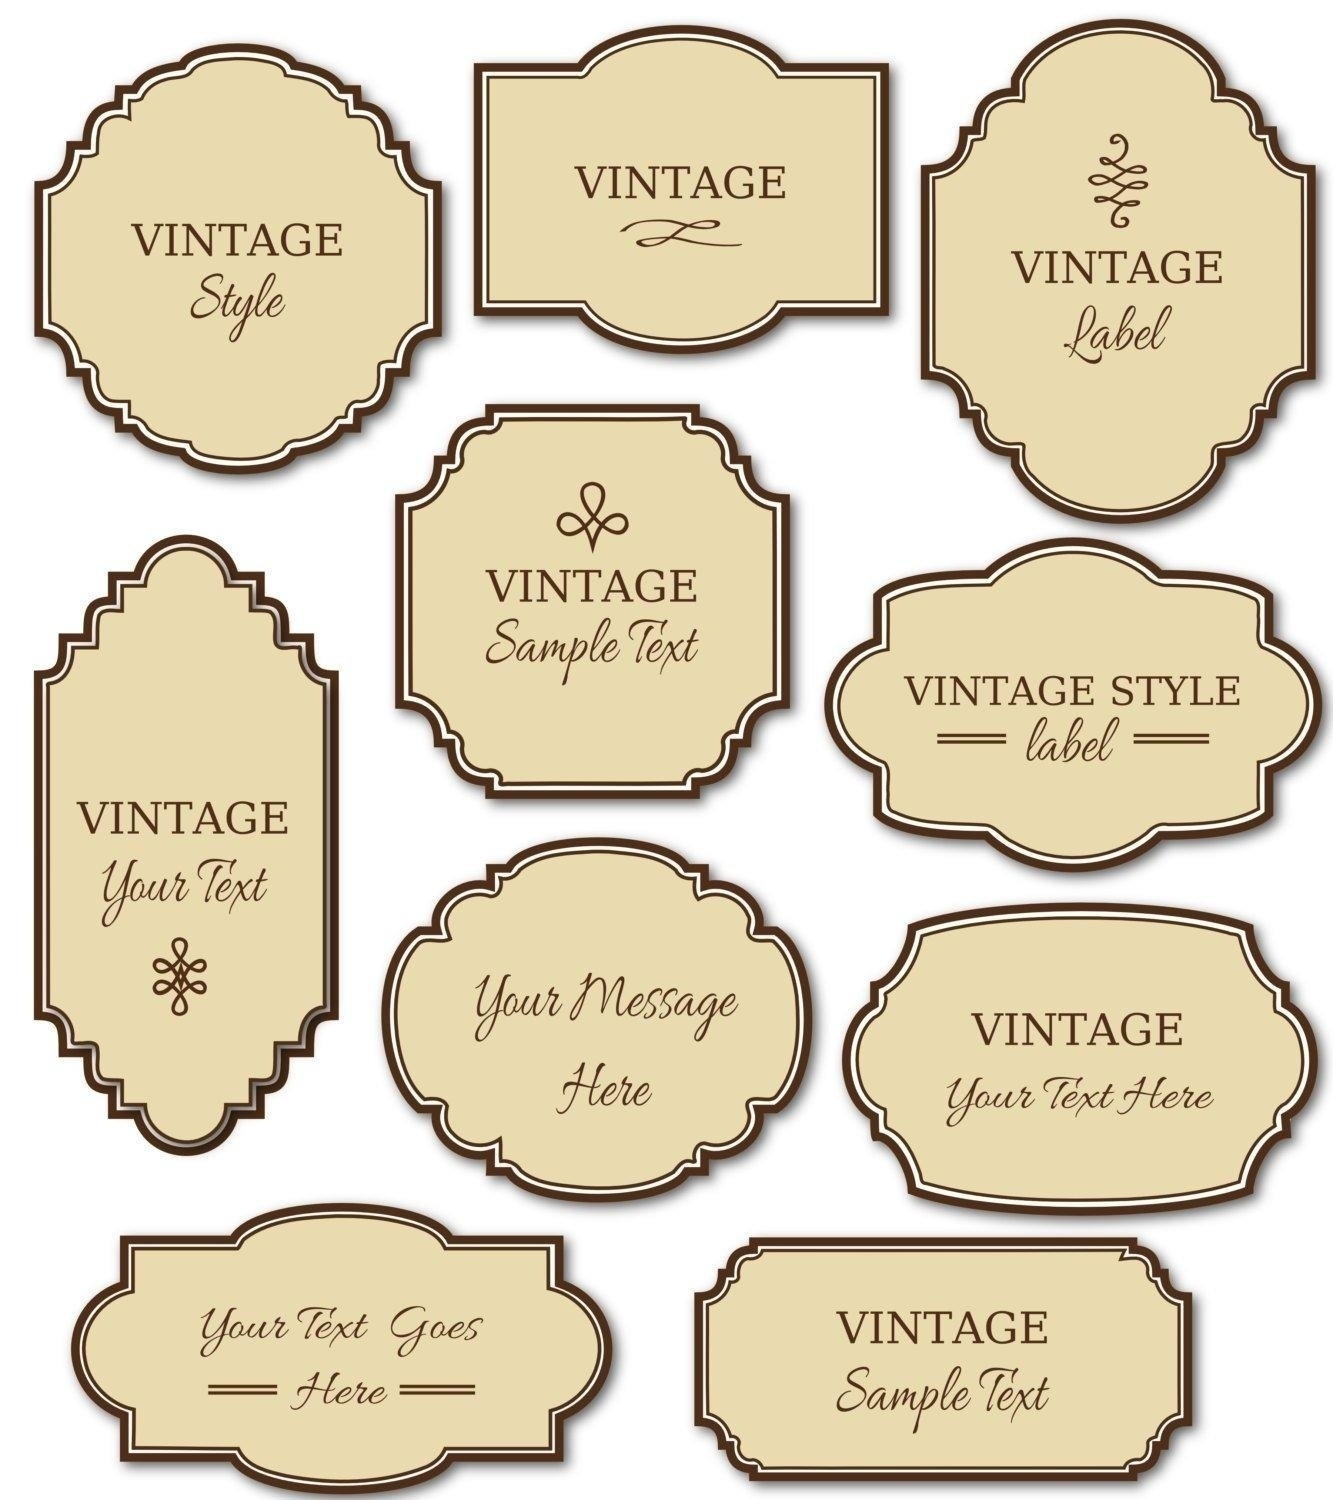 Free Printable Labels Vintage 2018 | Corner Of Chart And Menu - Free Printable Vintage Labels